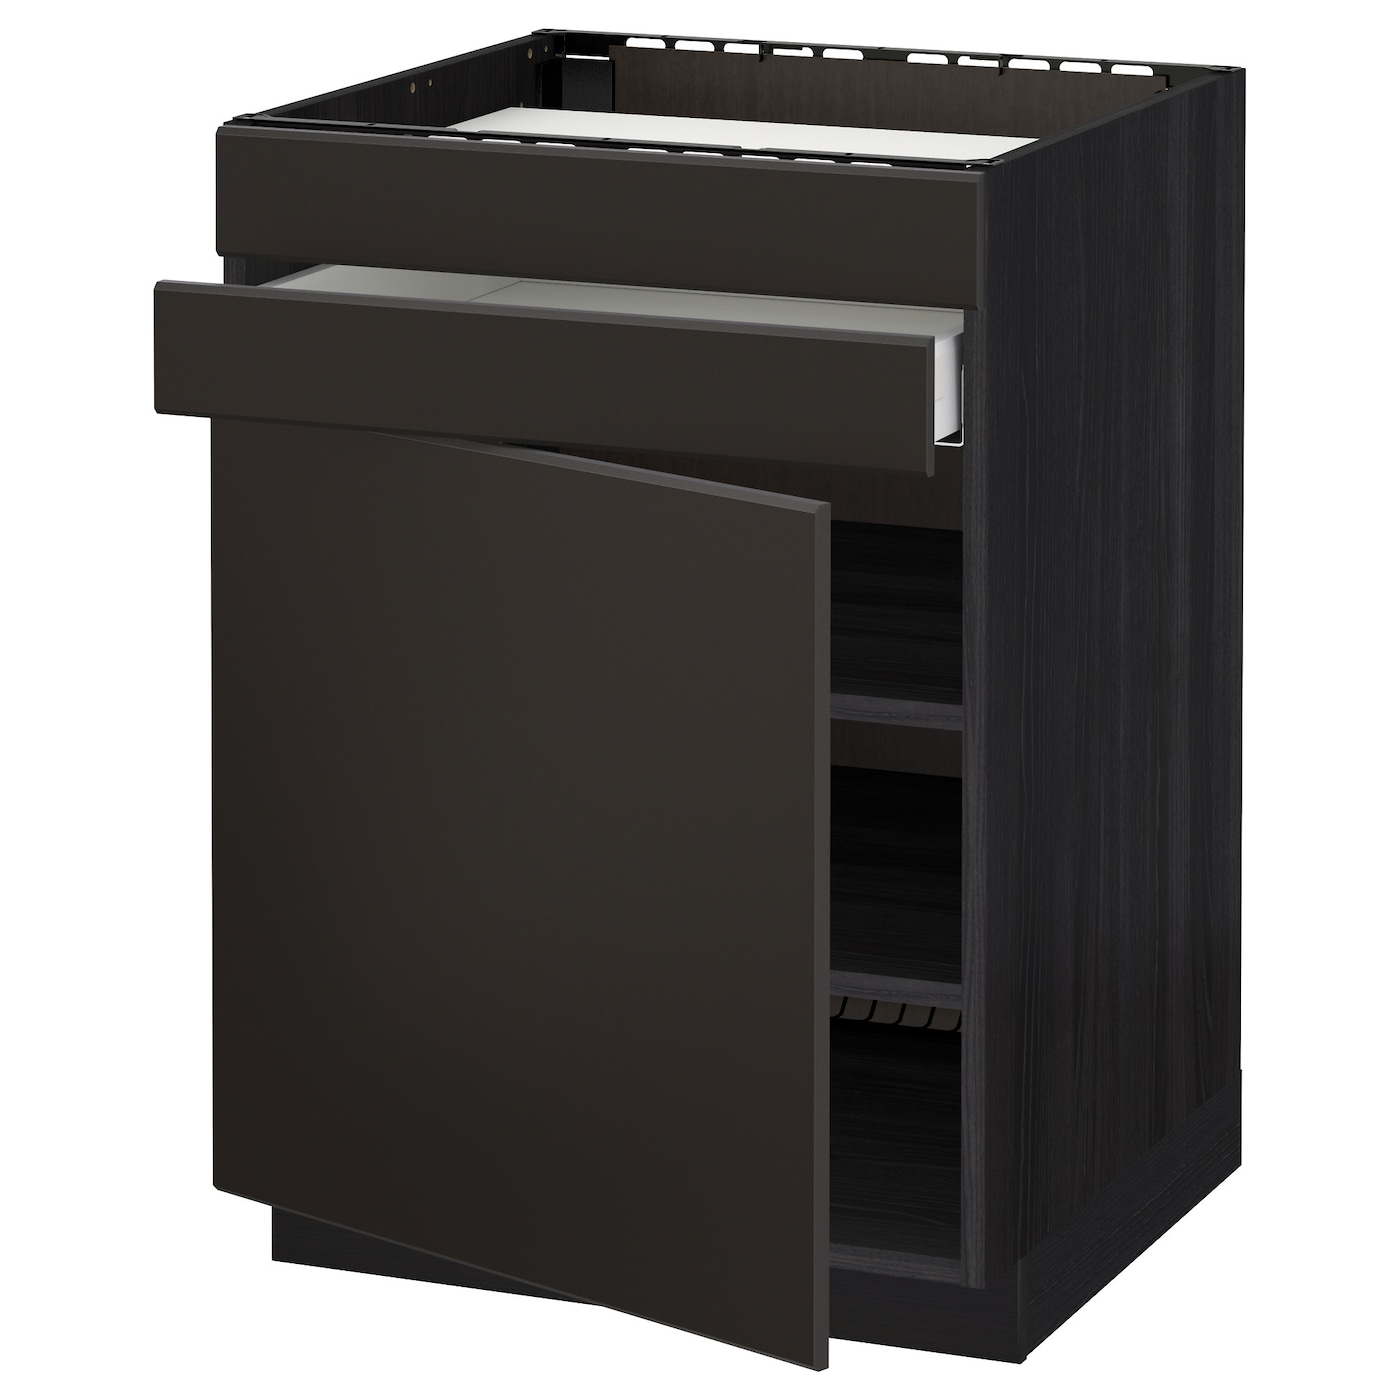 IKEA METOD/MAXIMERA base cb f hob/door/2 fronts/1 drwr Smooth-running drawer with drawer stop.